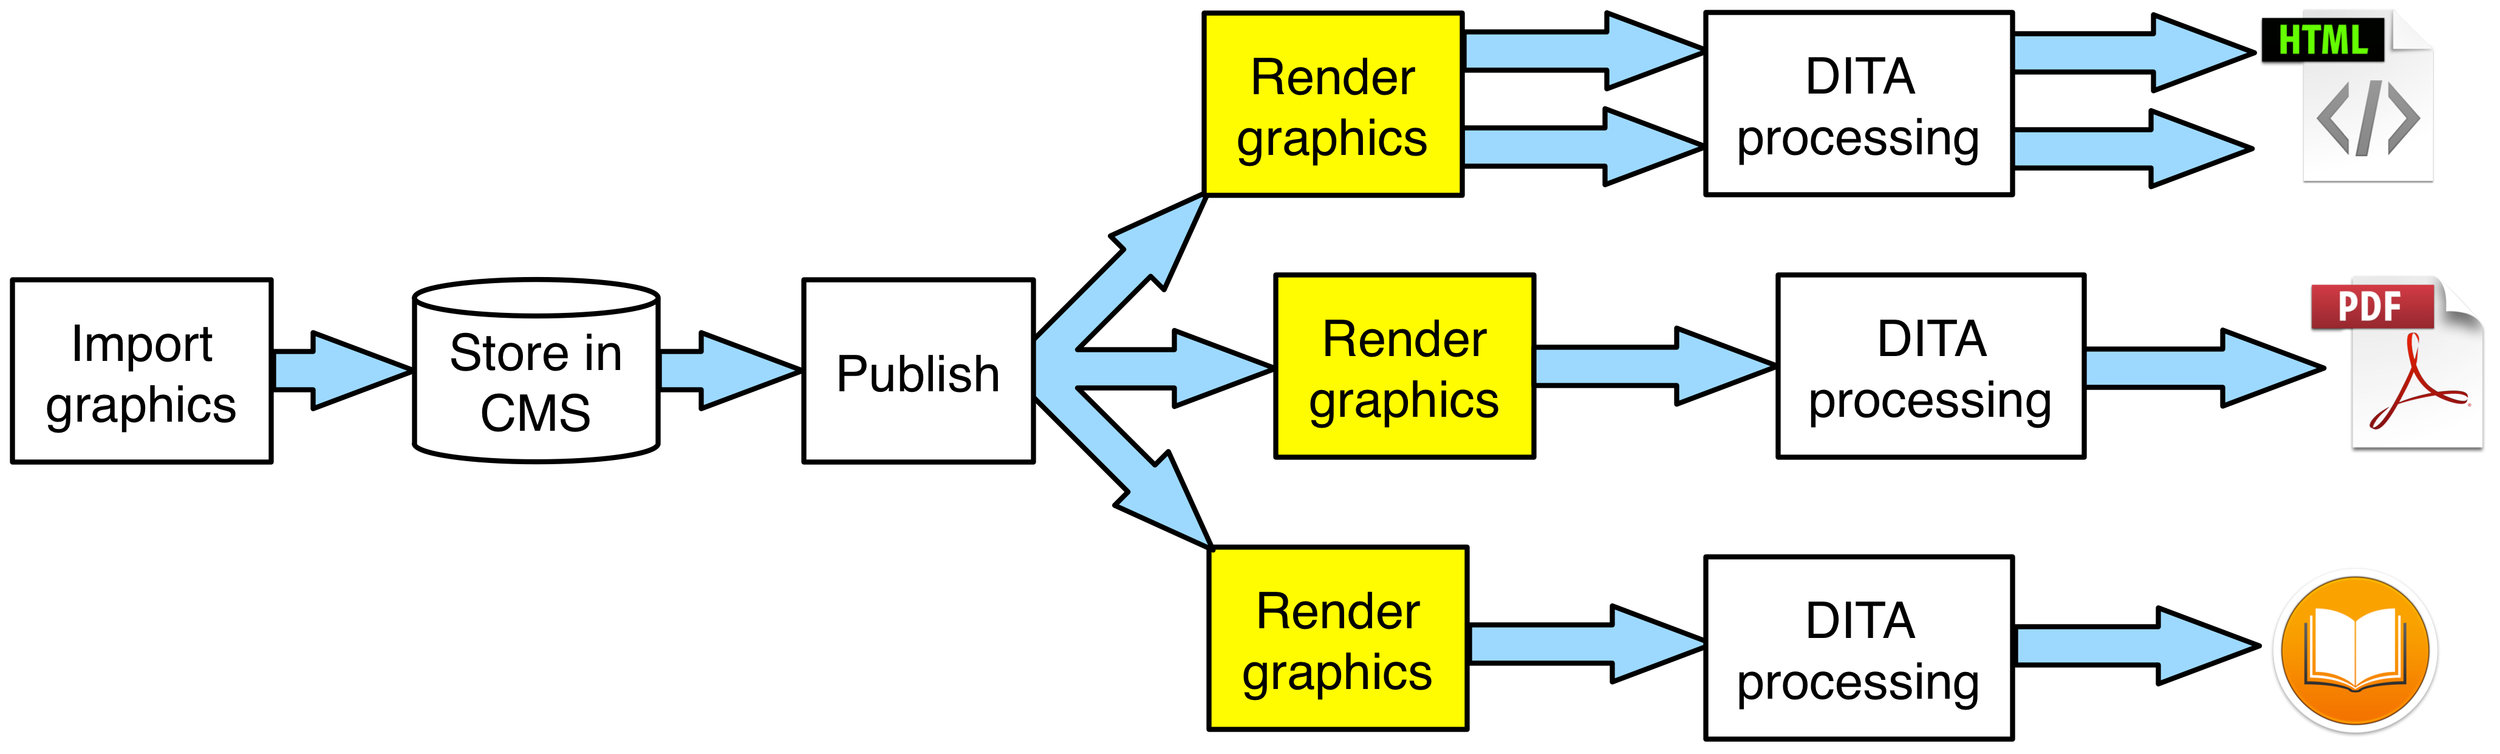 Rendering graphics versions when publishing